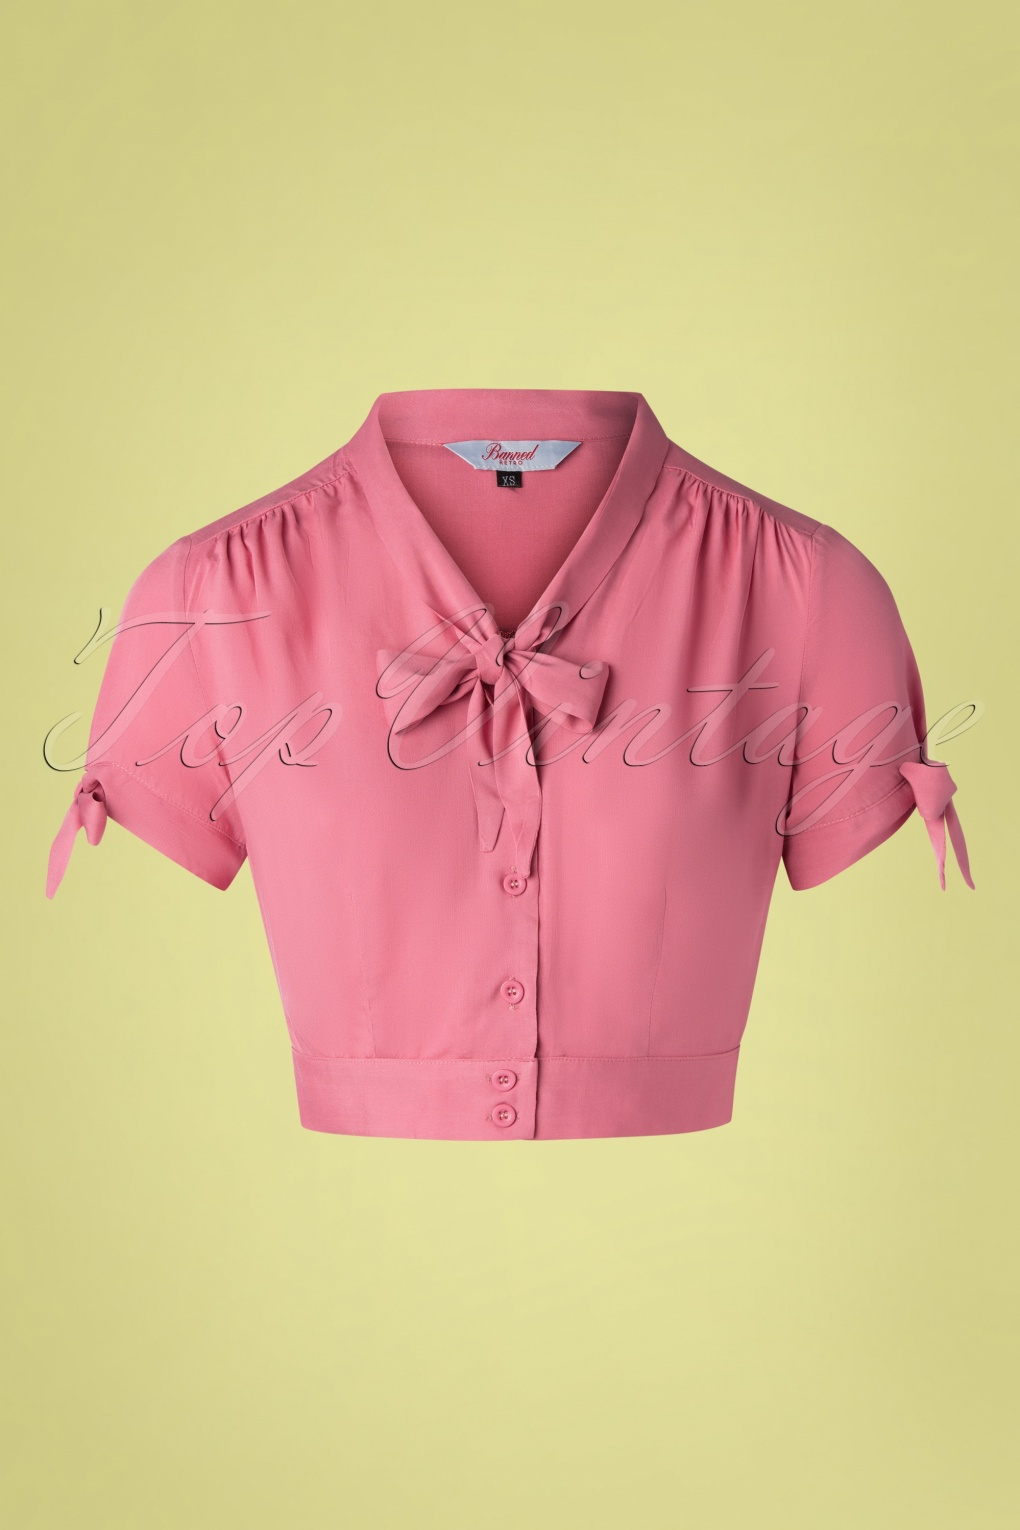 1950s Rockabilly & Pin Up Tops, Blouses, Shirts 50s Pussy Crop Top in Rouge Pink £27.15 AT vintagedancer.com